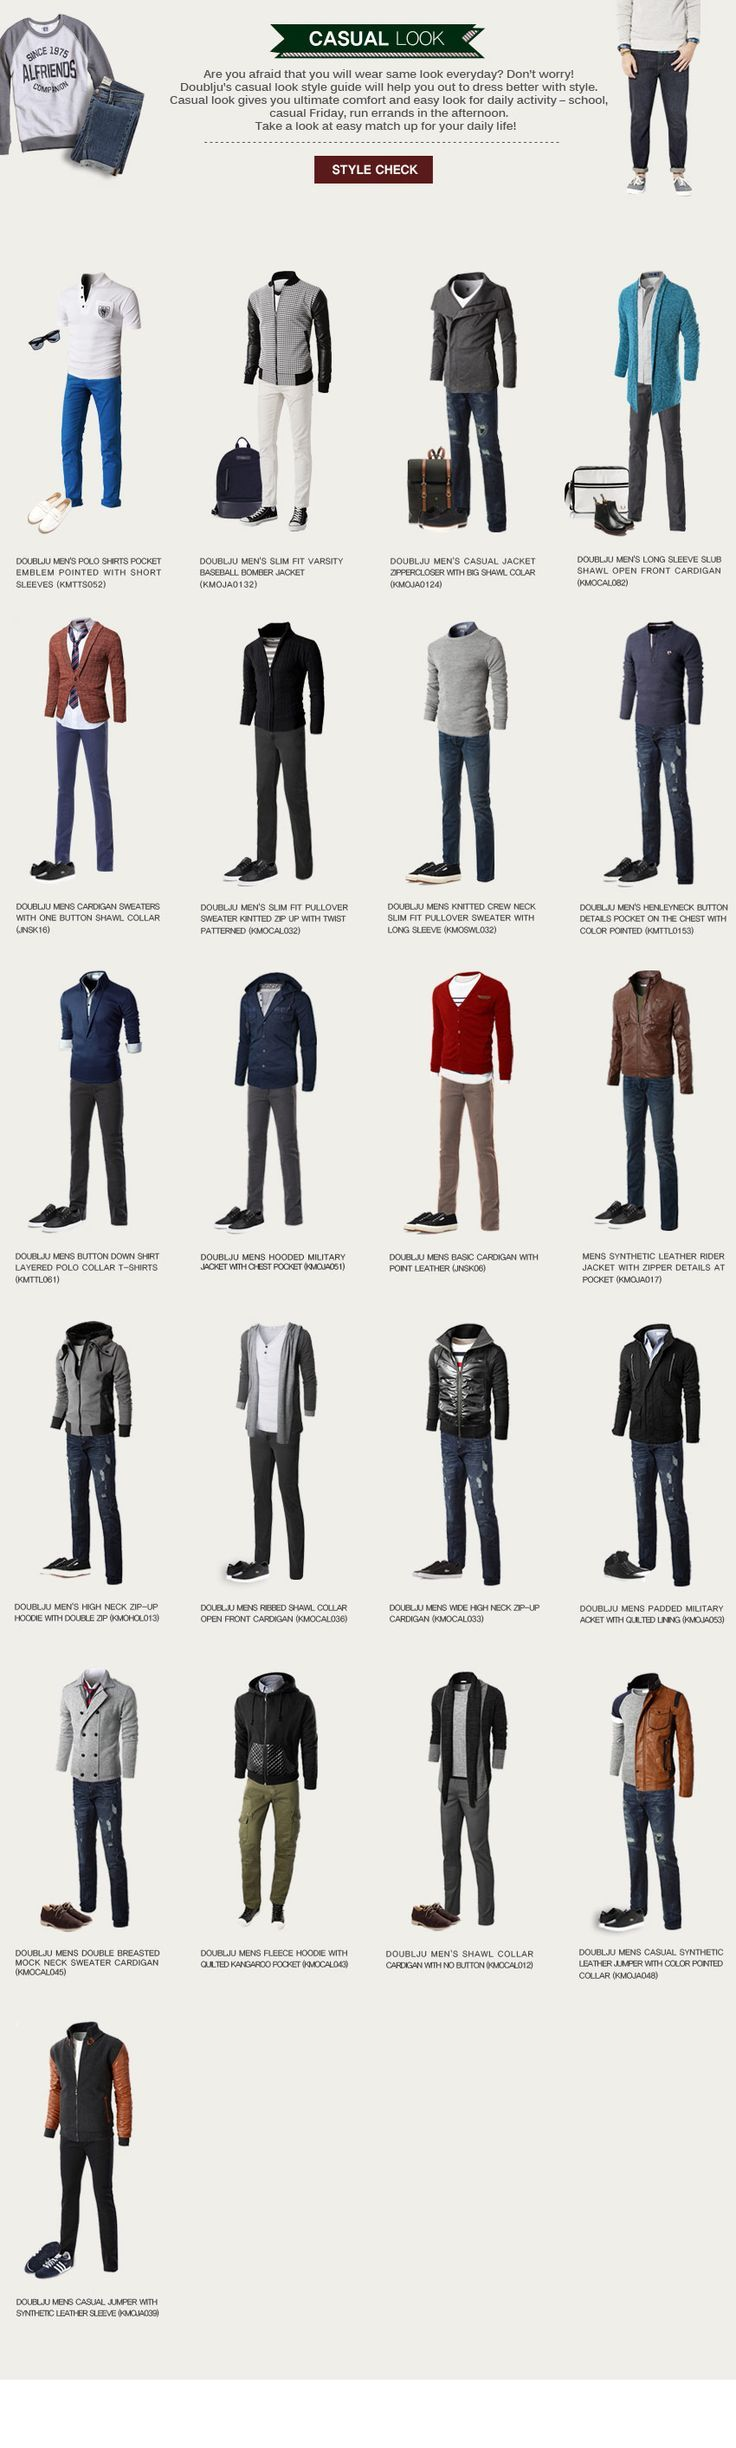 Gentlemen's Fashion | Tipsographic | More gentlemen's fashion tips at http://www.tipsographic.com/ - mens fashion clothing online store, mens wear clothing, mens clothing suit